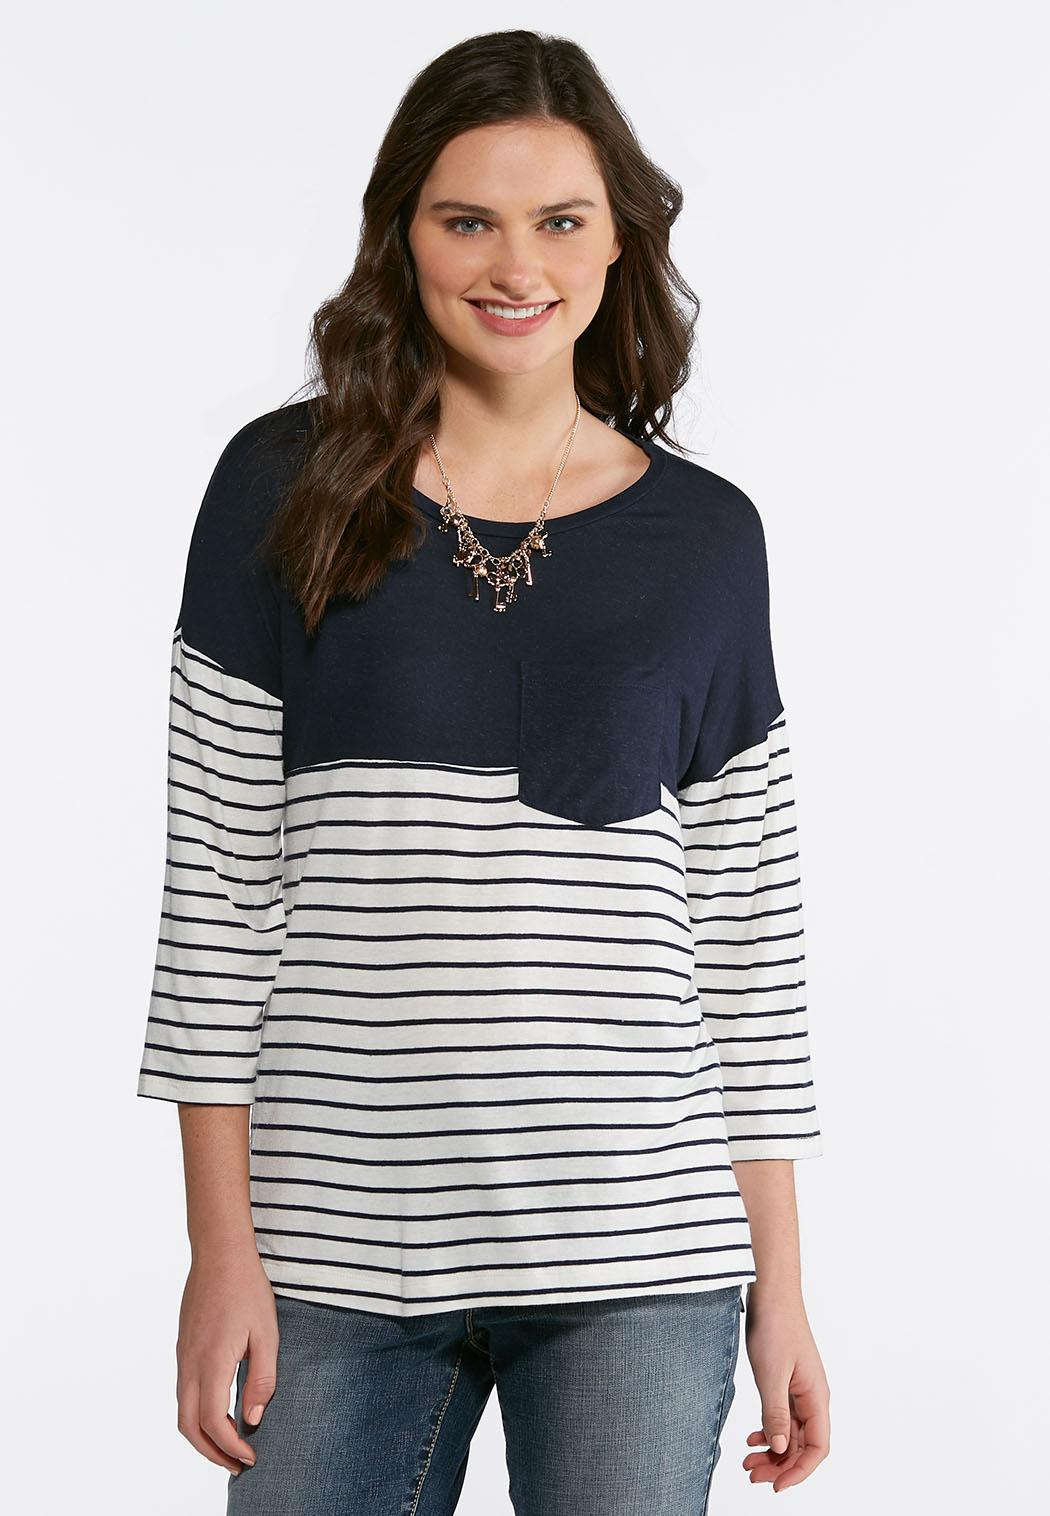 ac082bfc003c3 Pocket Front Navy Striped Top Tops Cato Fashions